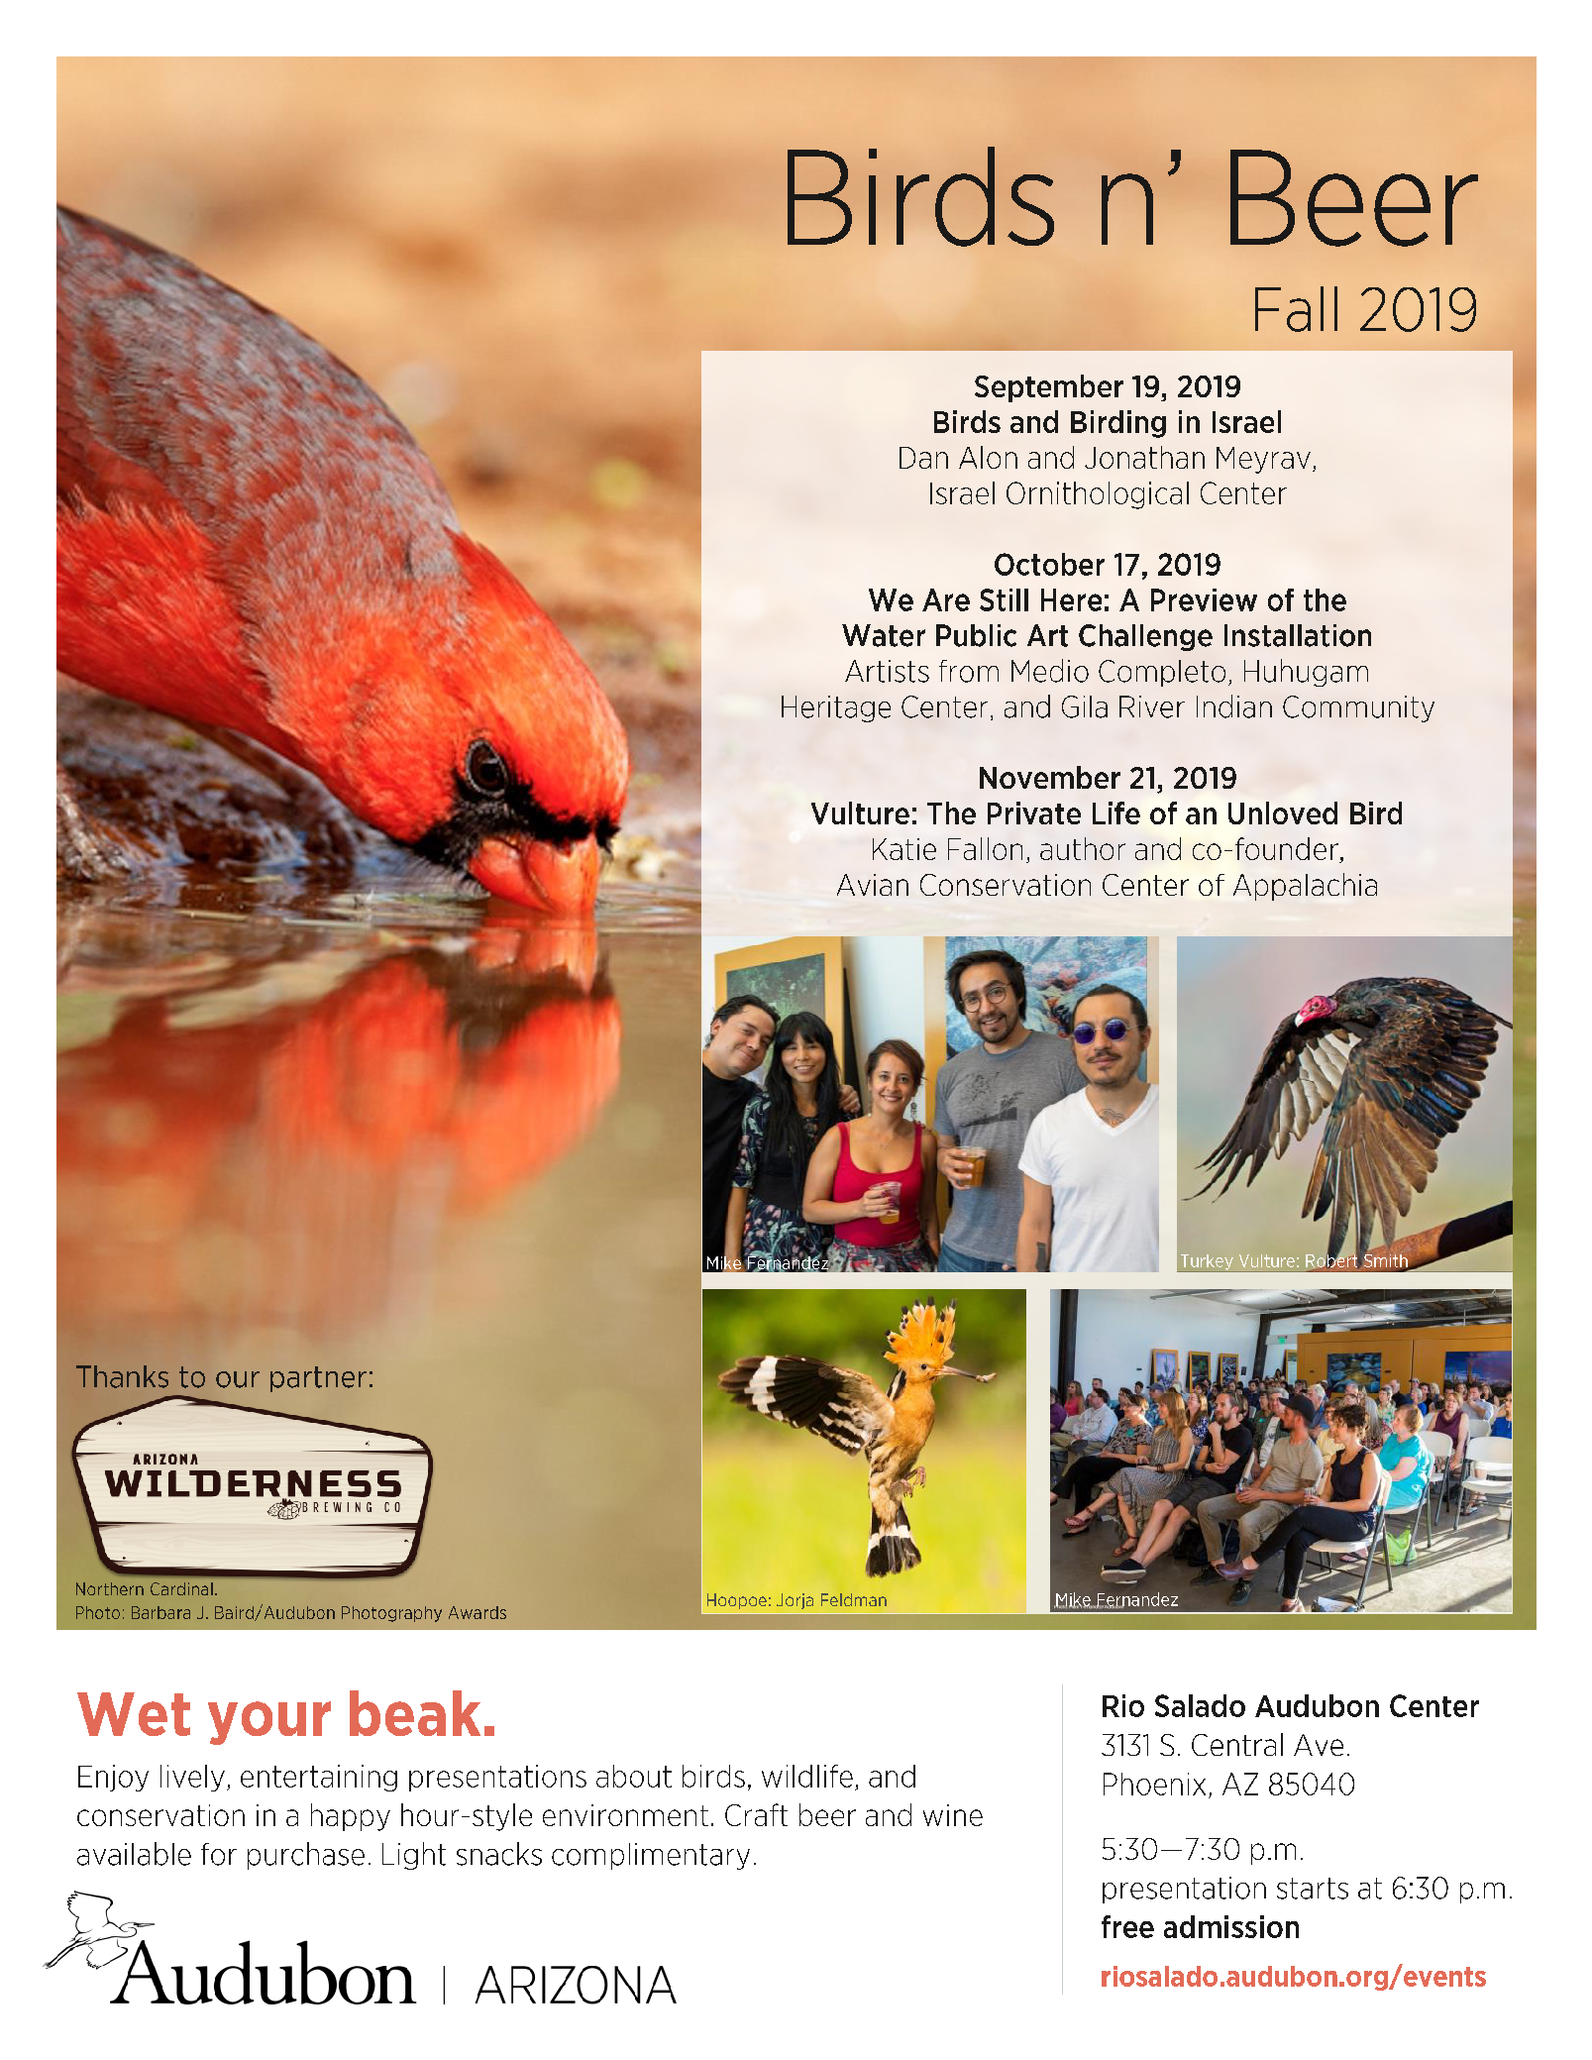 The Birds n' Beer flyer for Fall 2019. Event dates are on Sept 19, Oct 17, and Nov 21. Photos include a Northern Cardinal, Turkey Vulture, Hoopoe, and people enjoying the event.